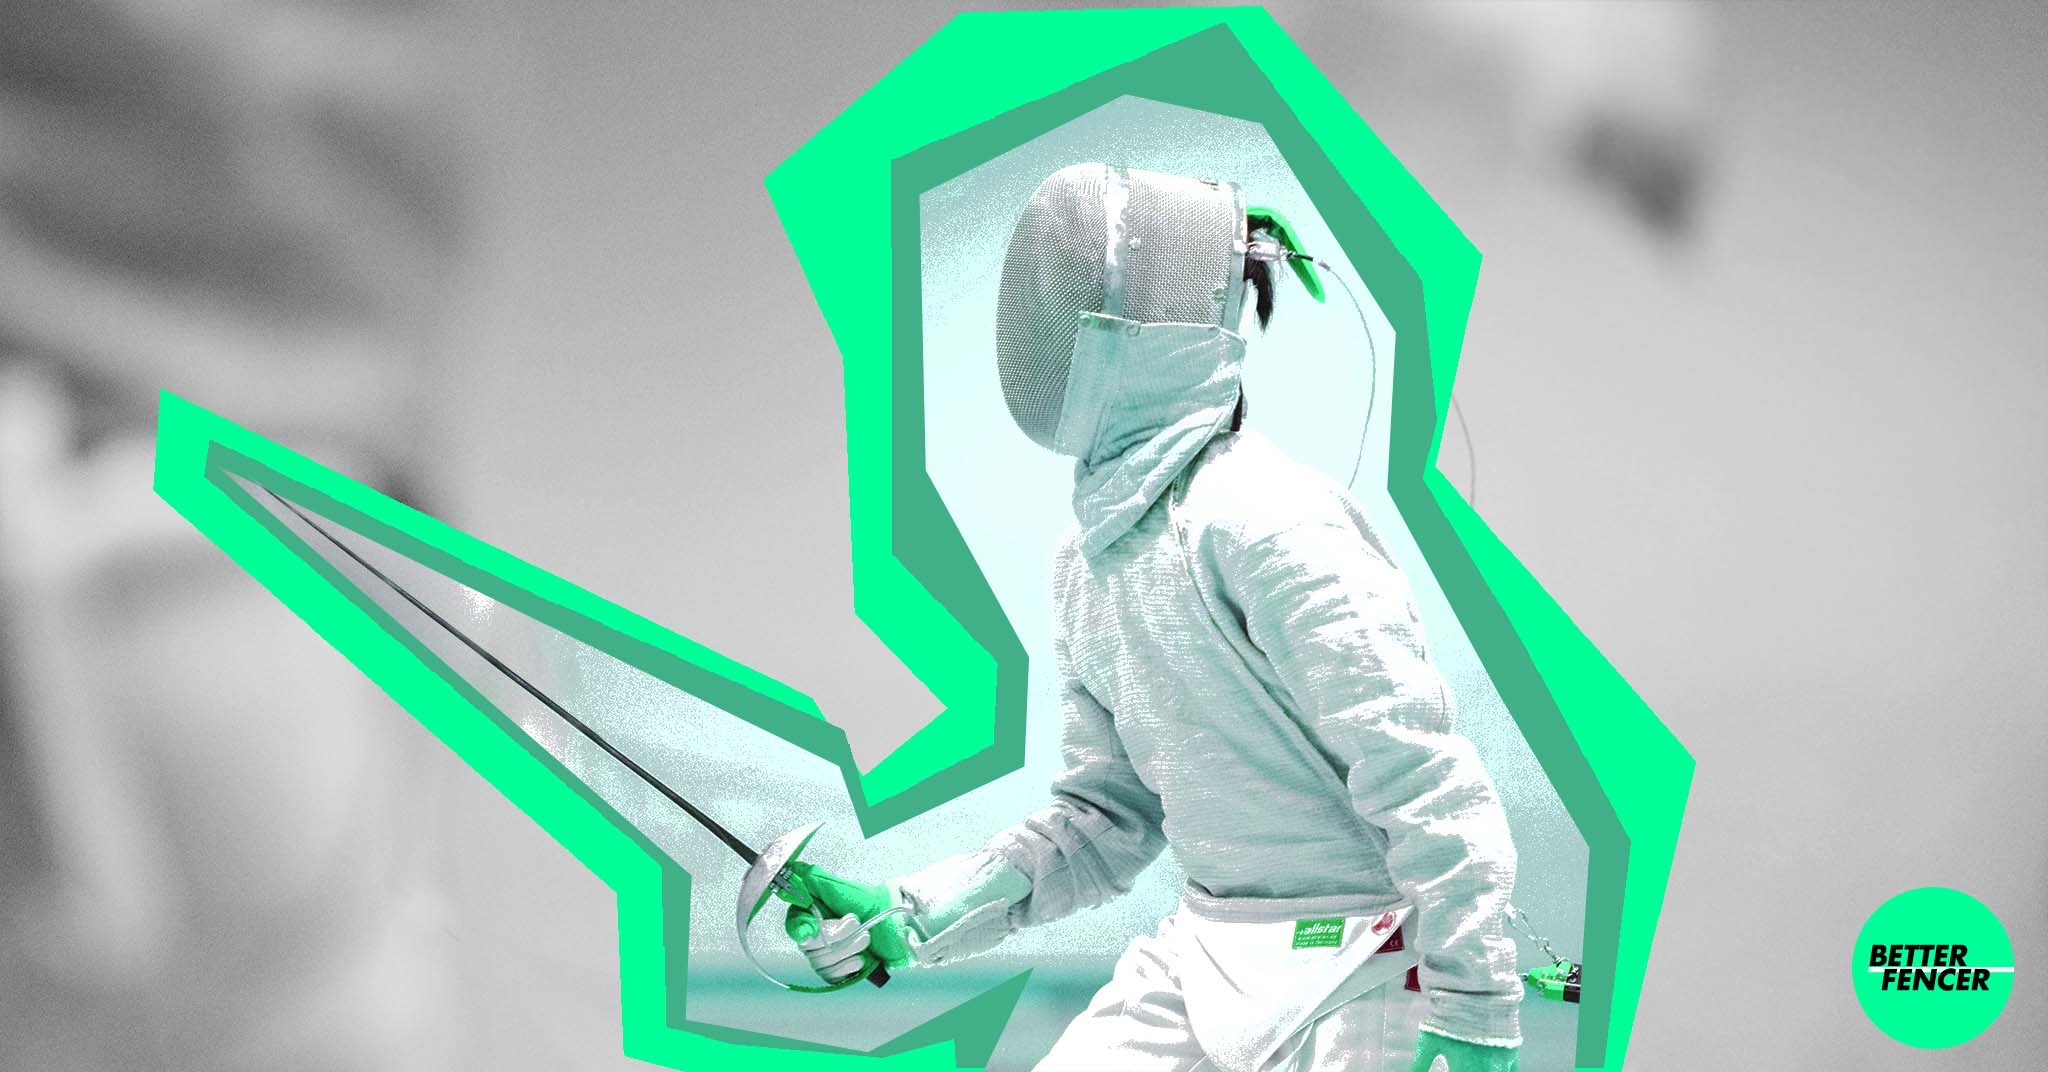 Is fencing right for you? The pros and cons of the modern sport of fencing